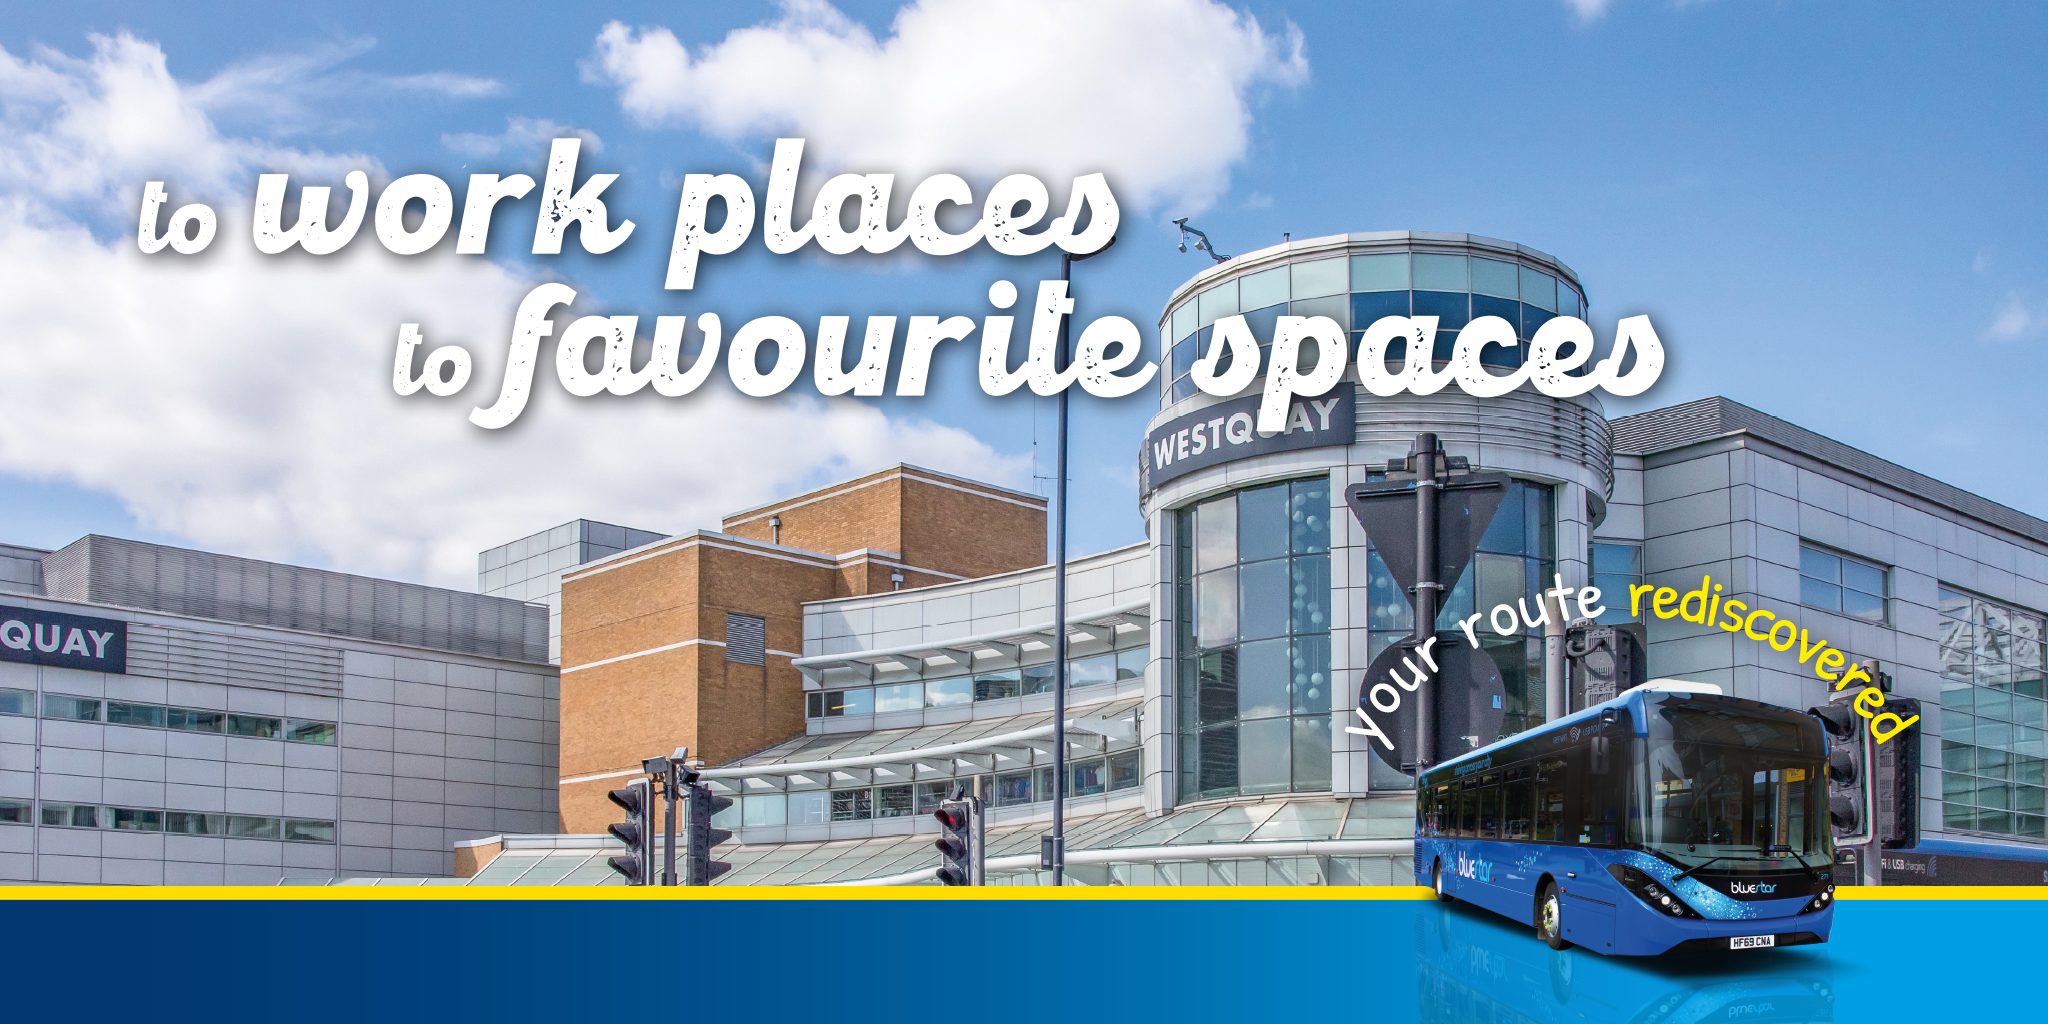 Photo of westquay with text saying 'to work places, to favourite spaces'